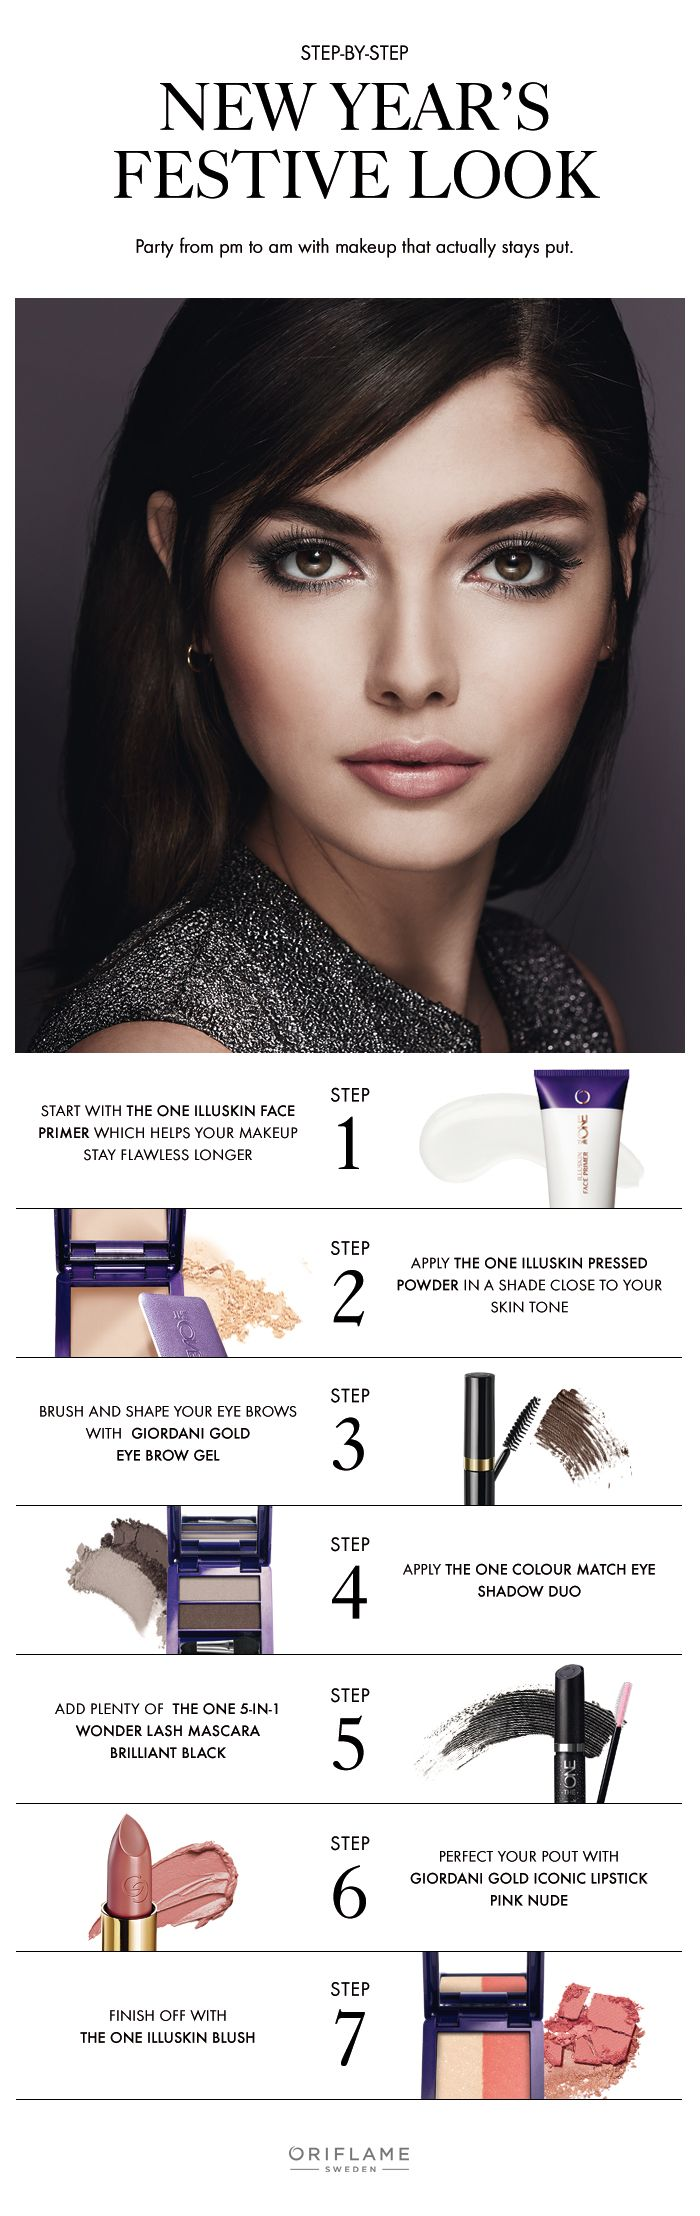 Start 2016 as you mean to go on, with flawless makeup (even at 3 in the morning). This how-to guide shows you how to master this elegant New Year's look in seven steps.